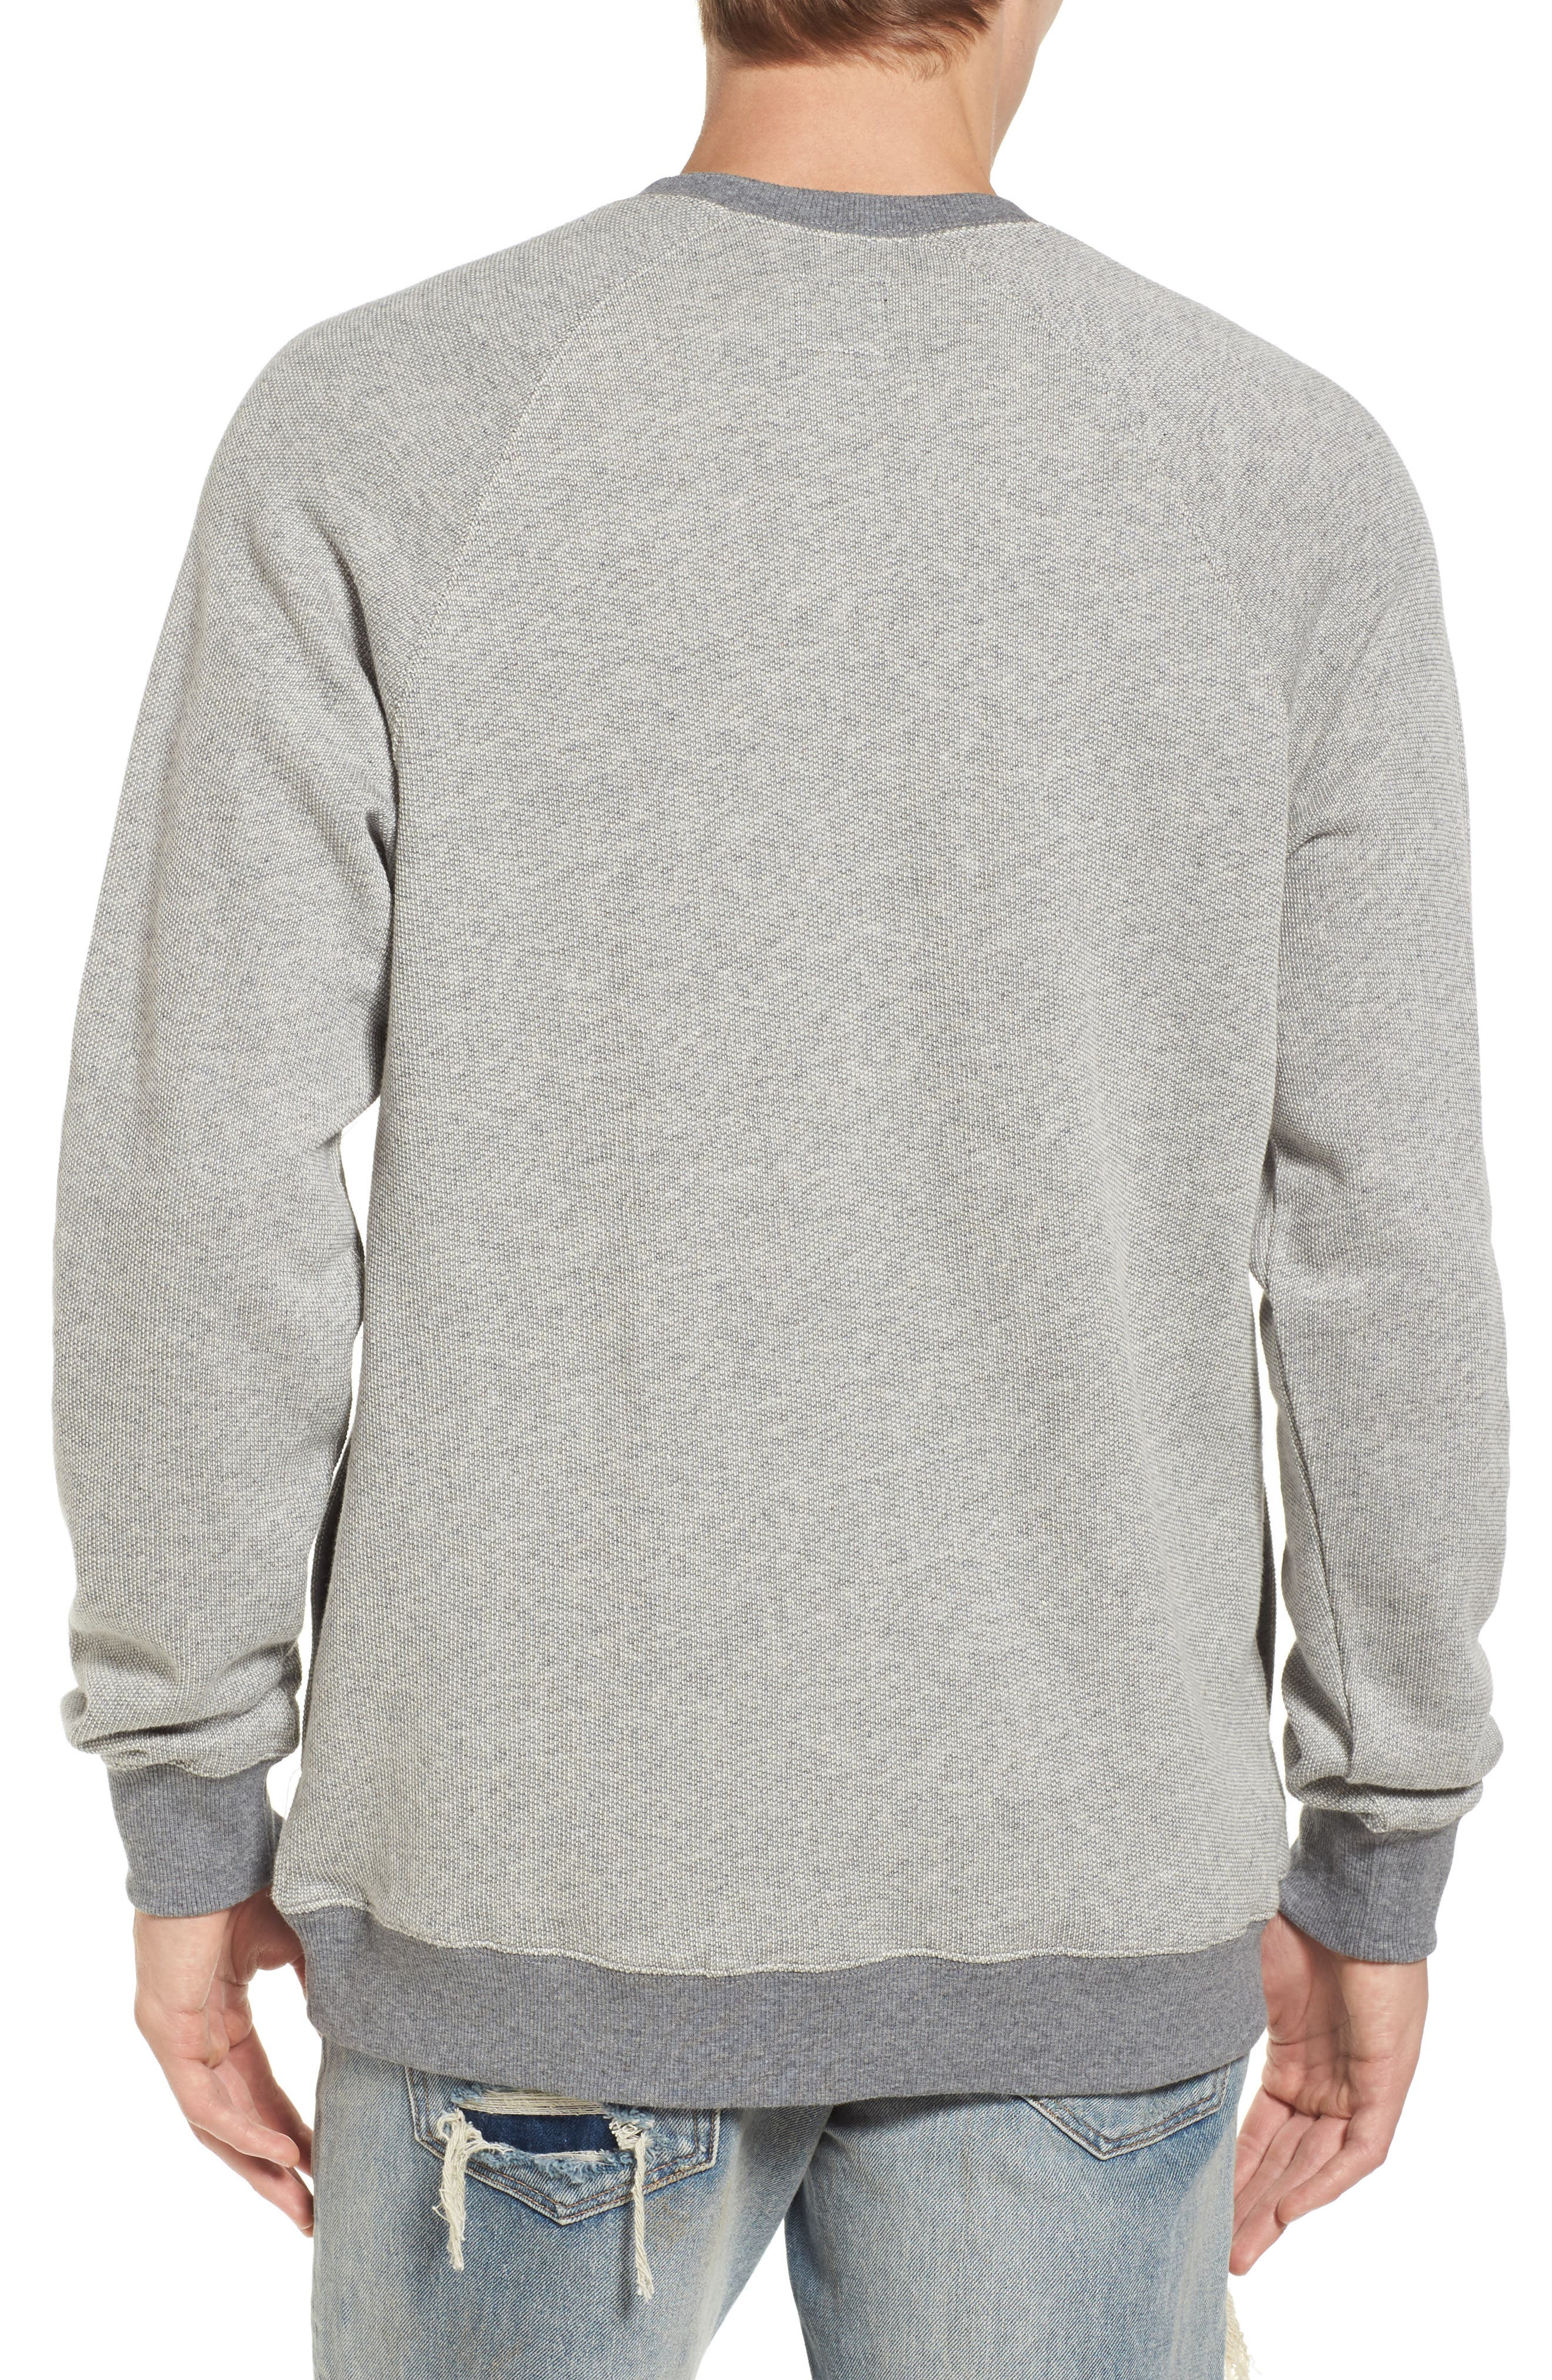 Capo Henley Pullover,                             Alternate thumbnail 2, color,                             051